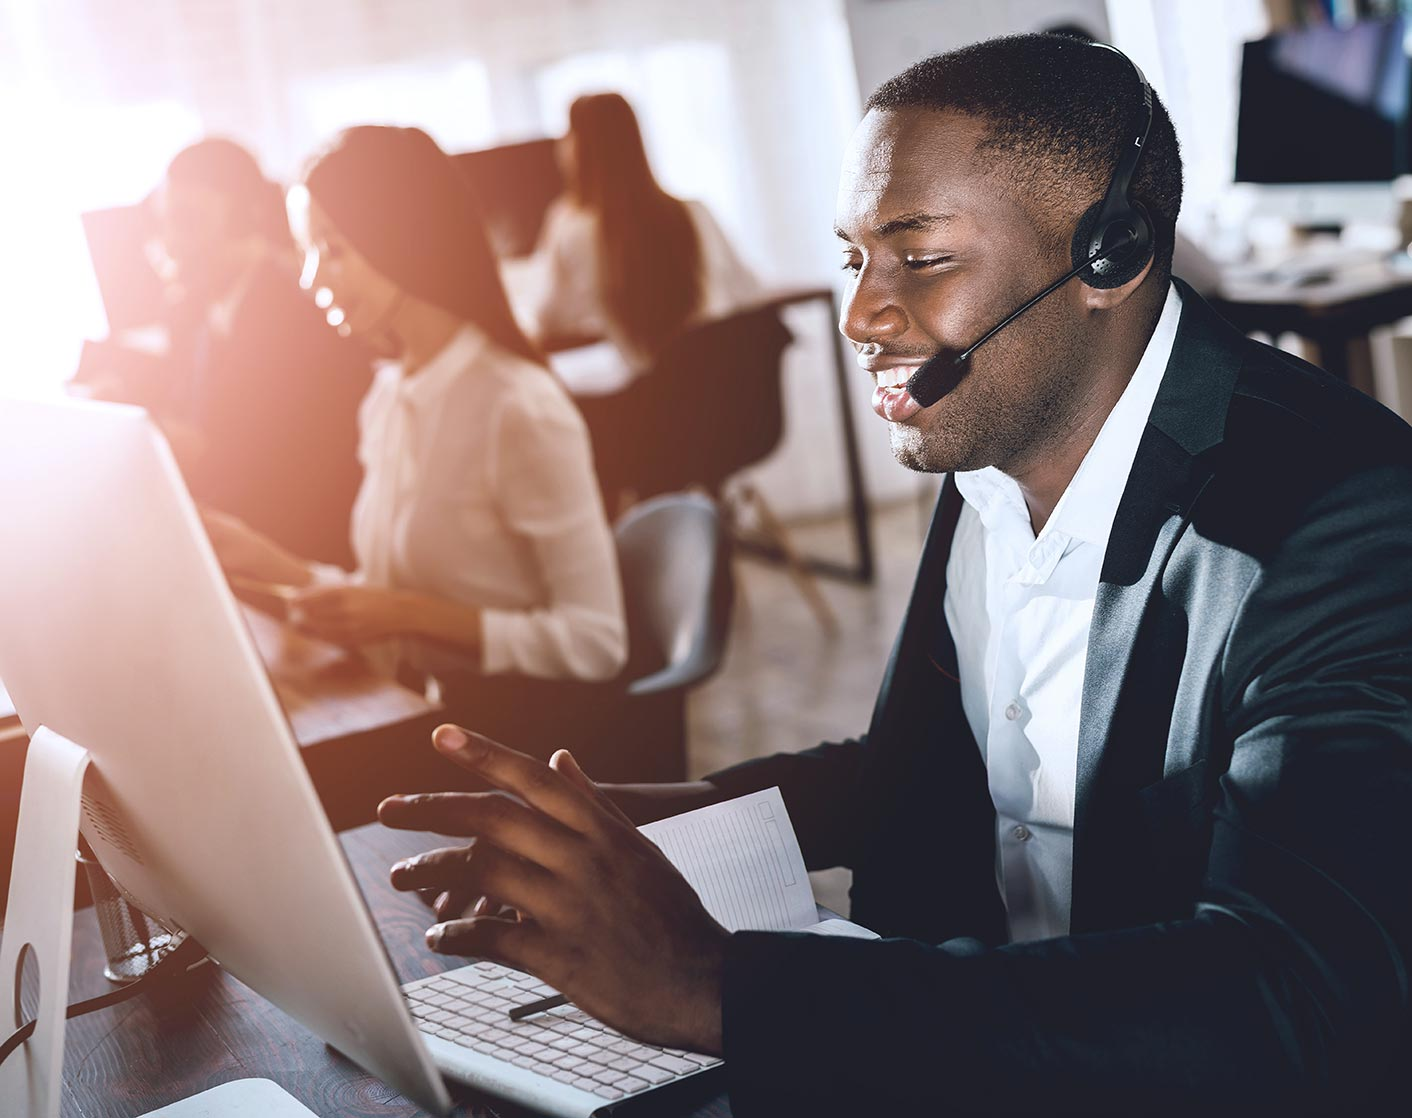 black man providing online support in a support desk office wearing a headset